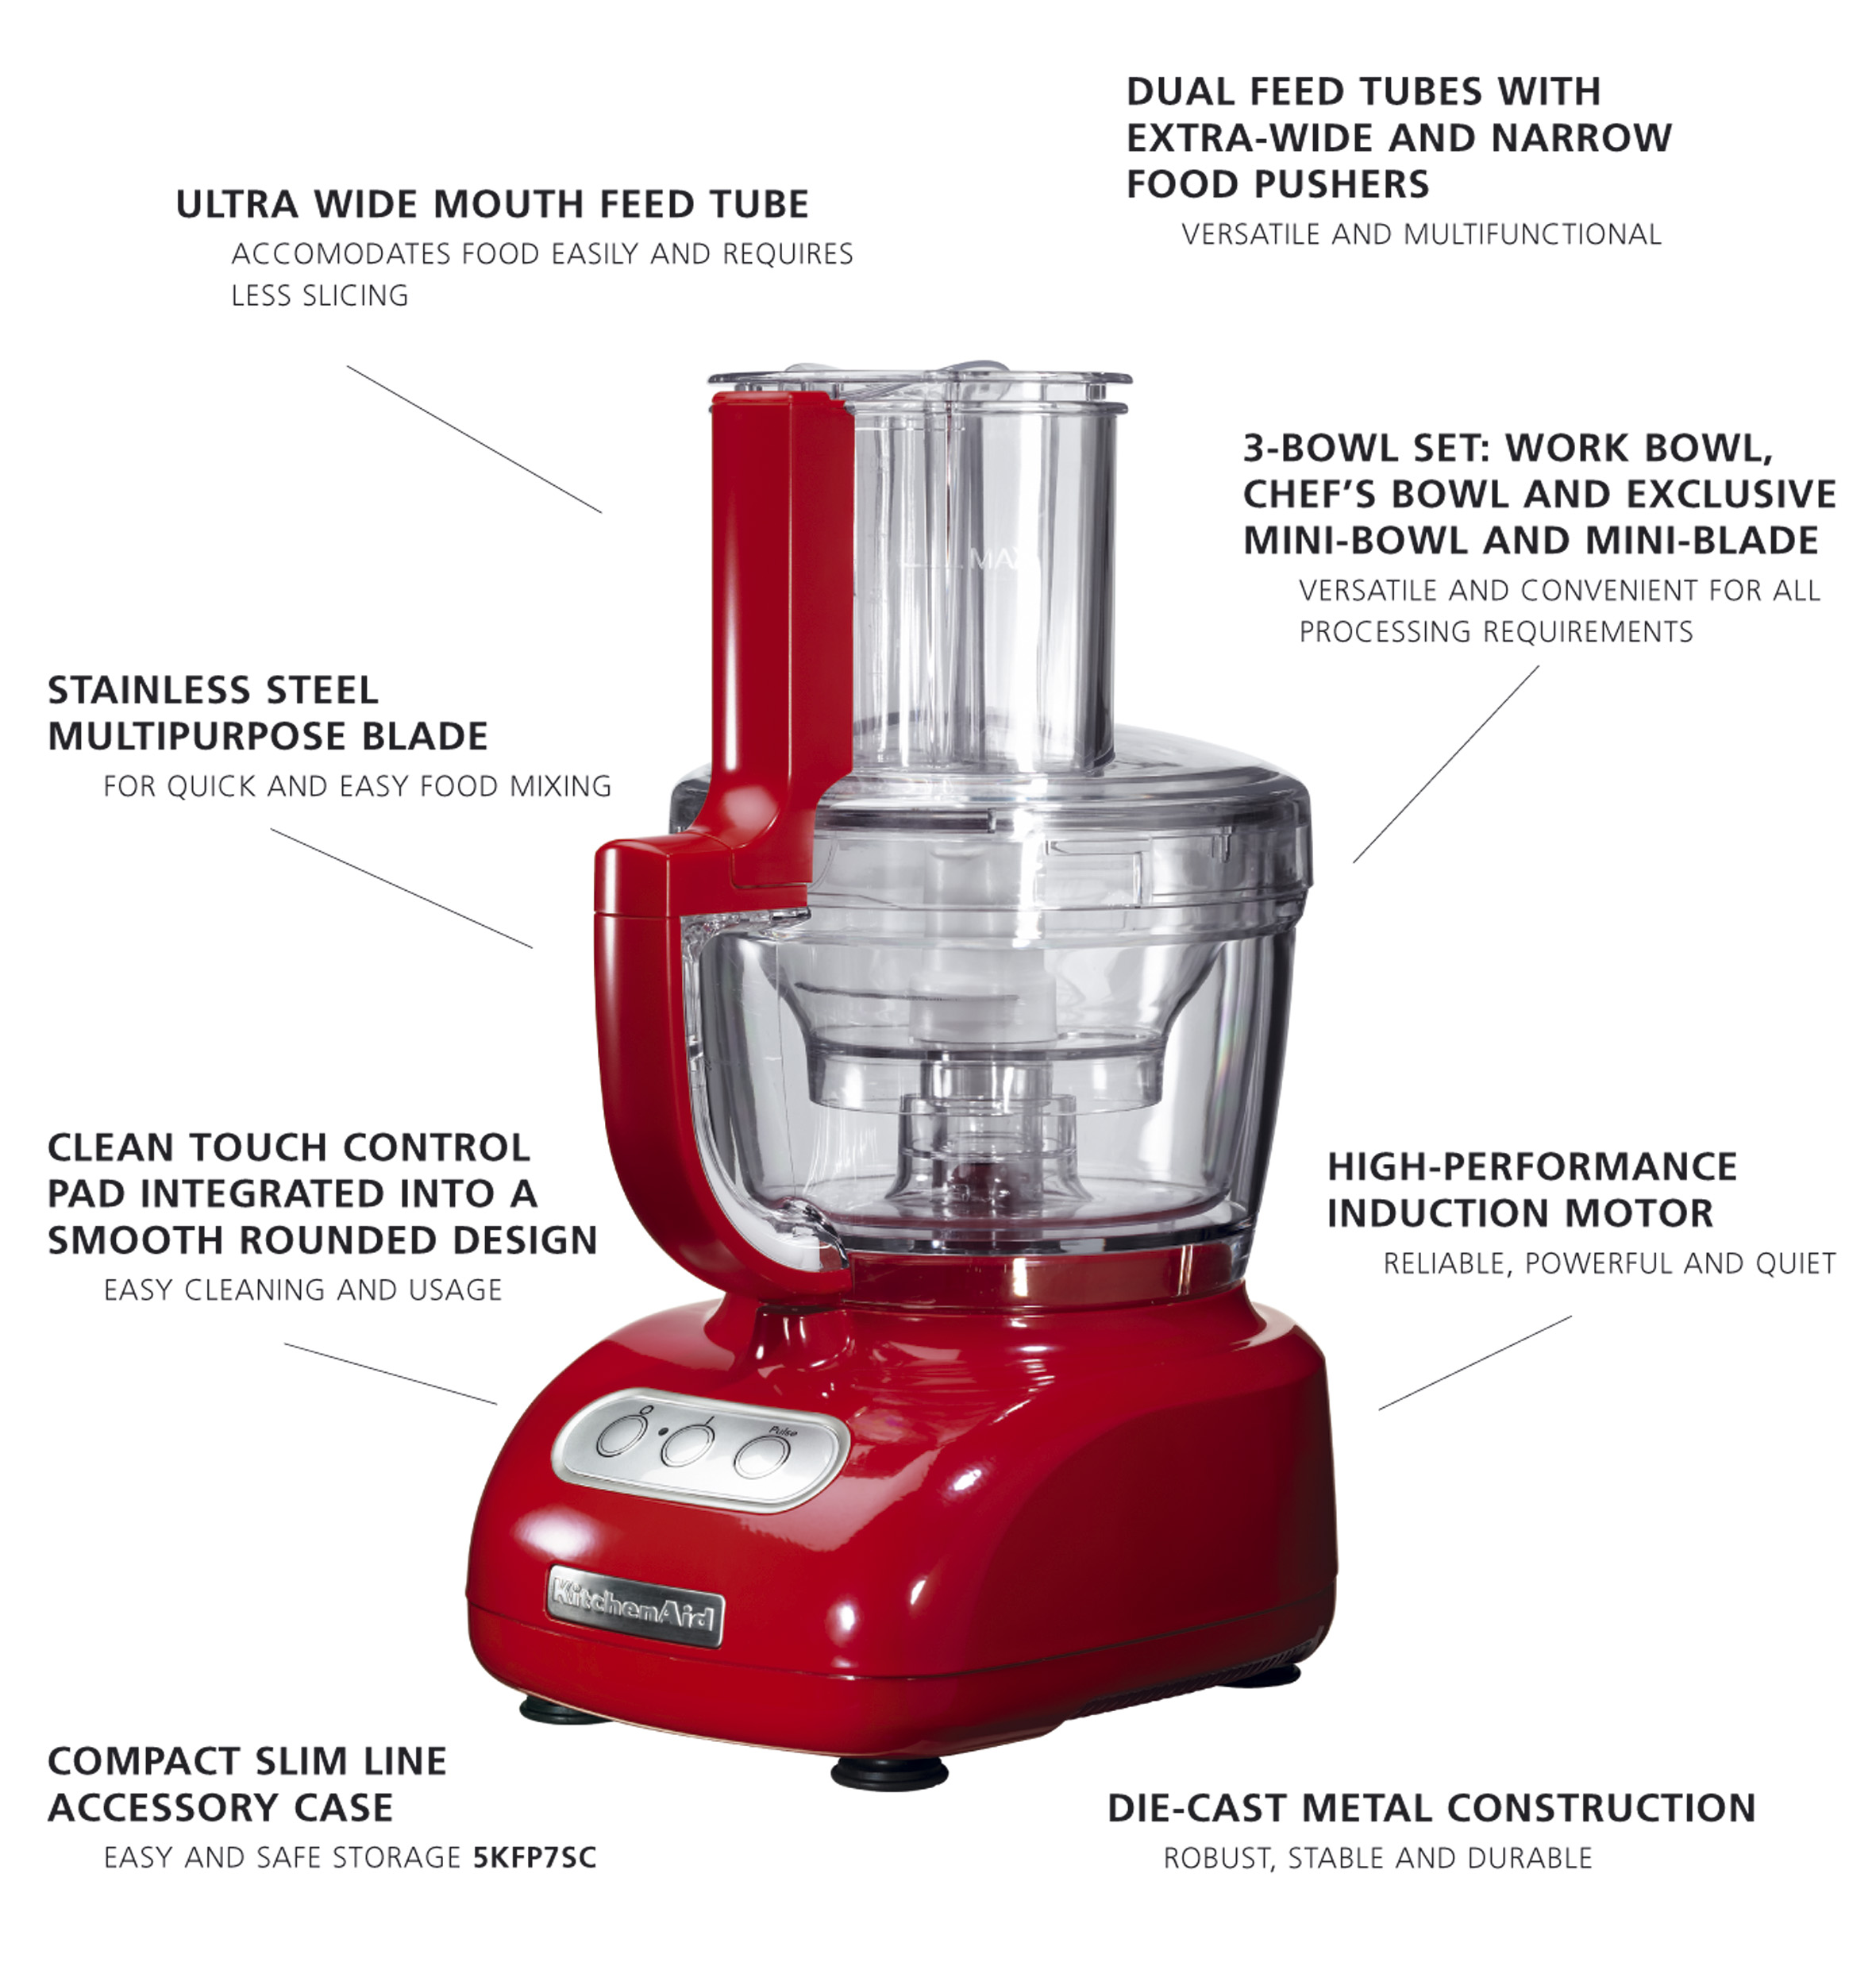 Magnificent KitchenAid Food Processor 2363 x 2481 · 666 kB · jpeg